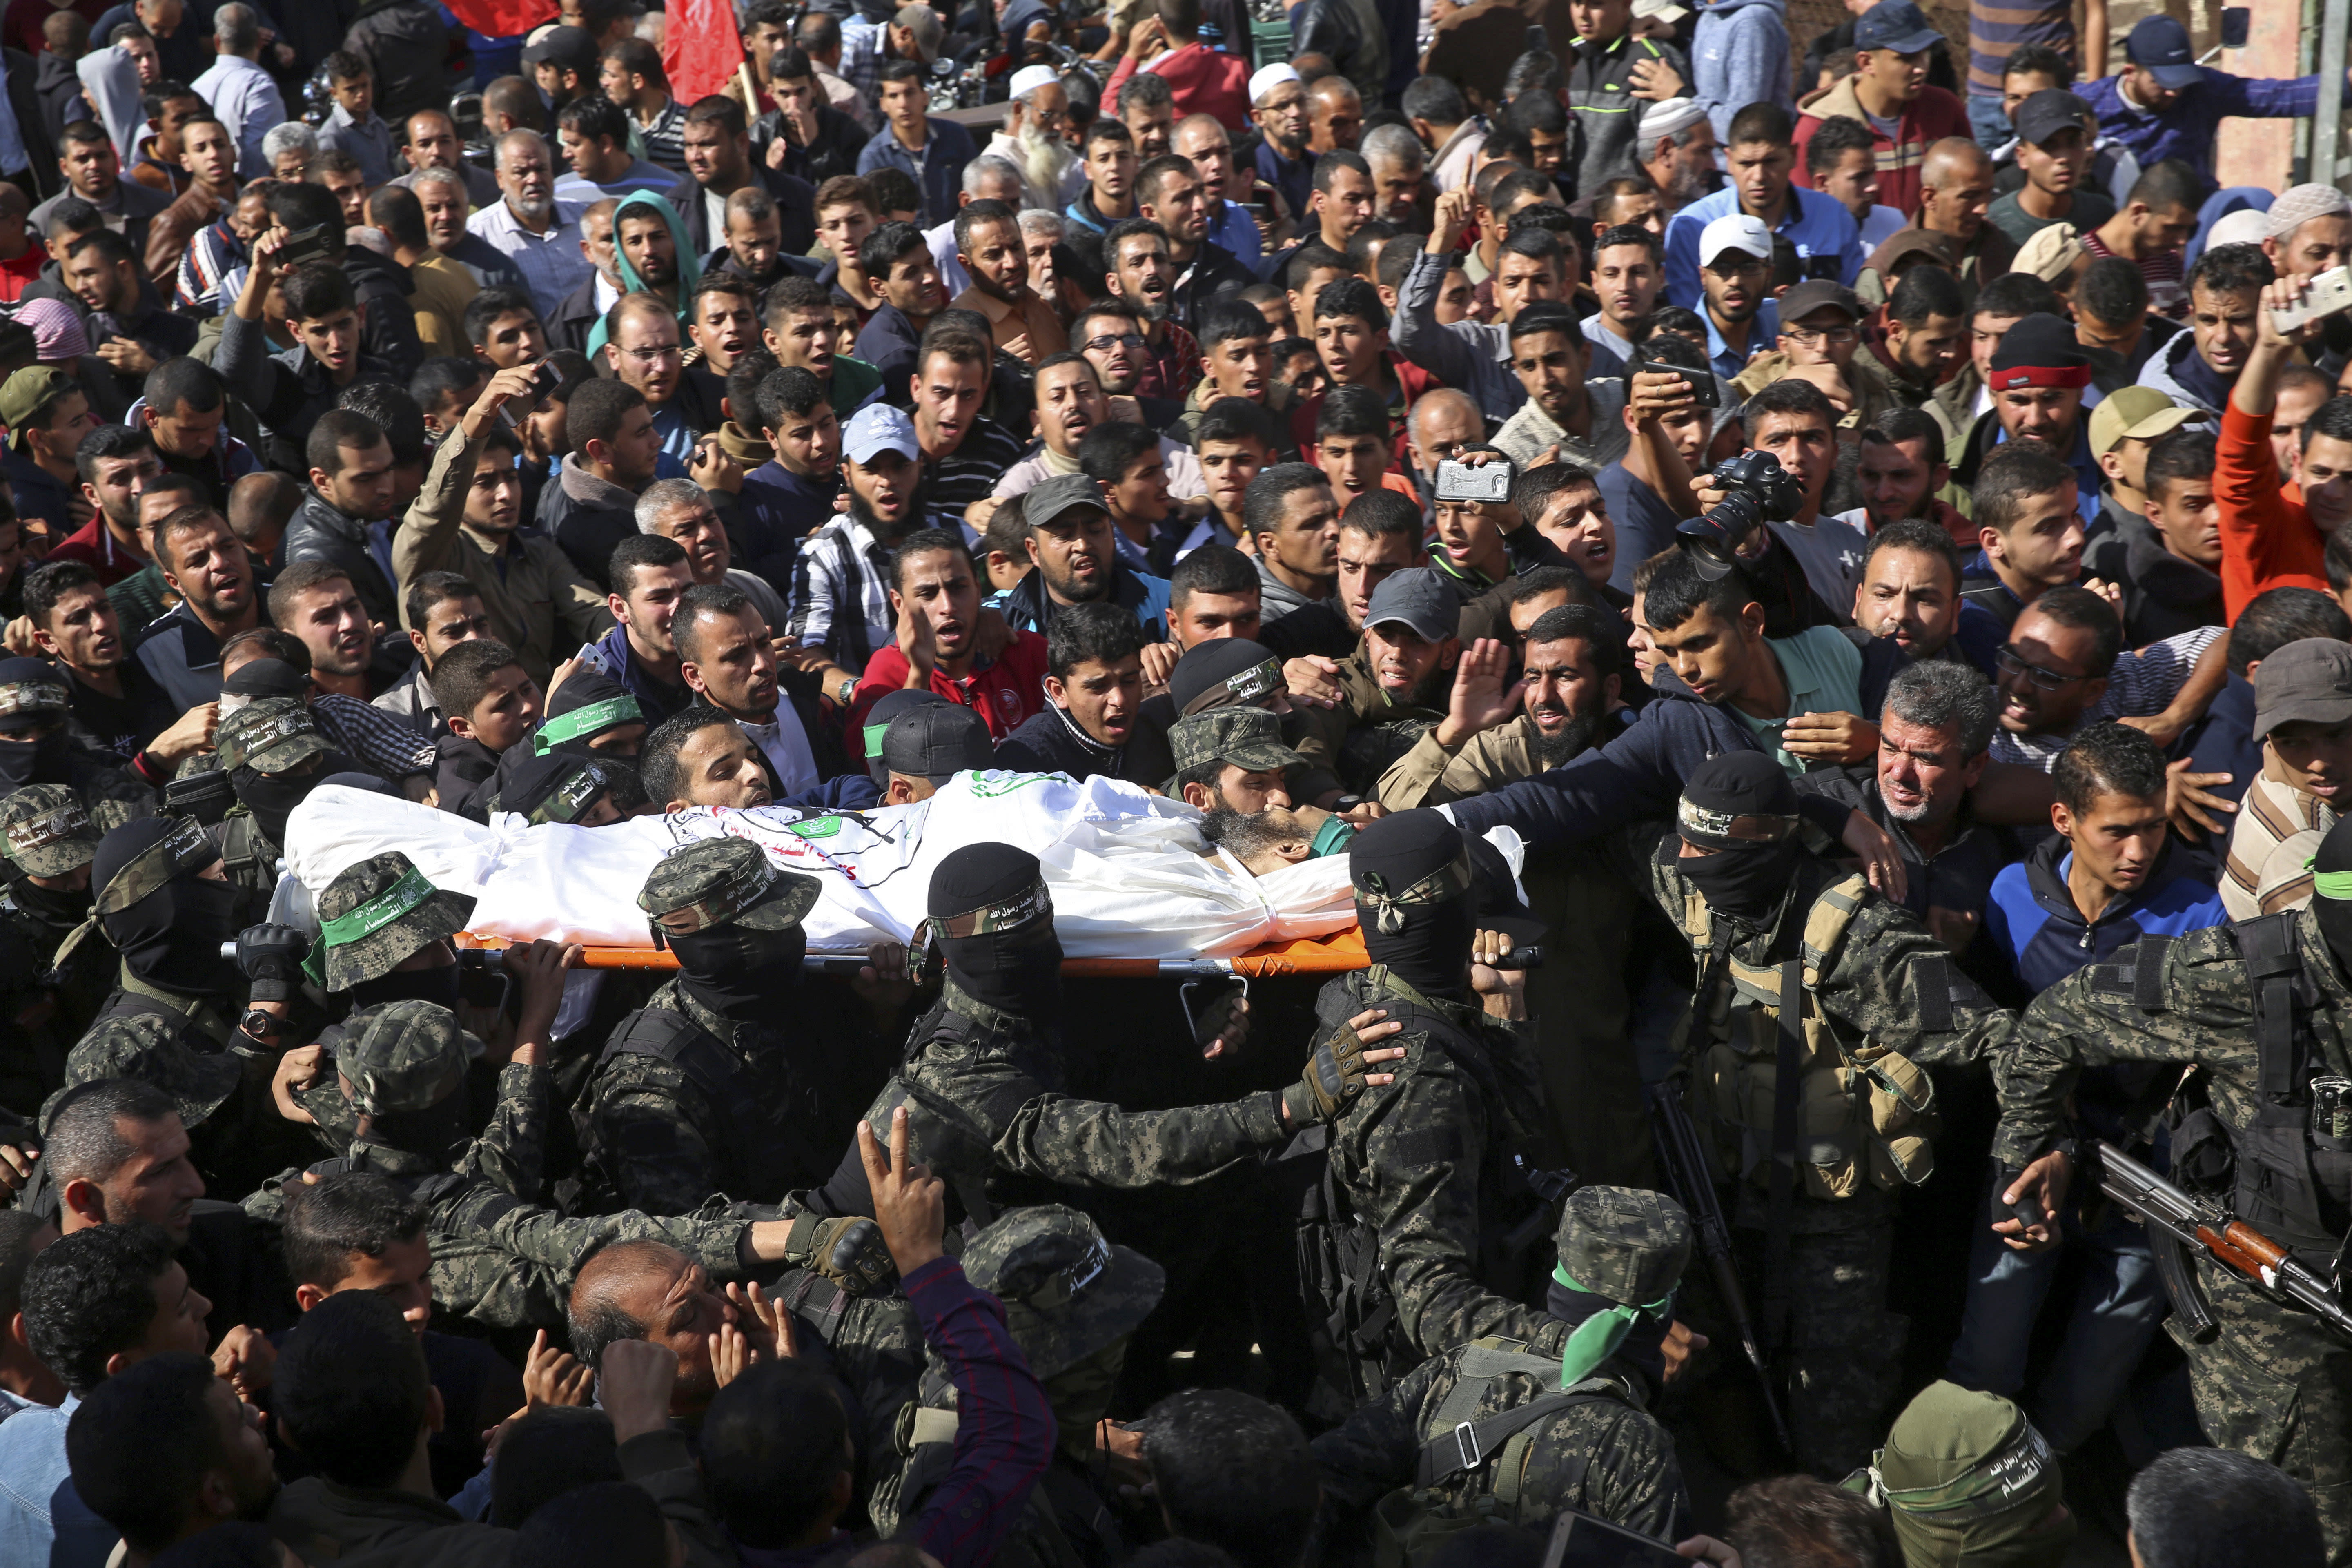 FILE - In this Monday, Nov. 12, 2018 file photo, mourners carry the body of Hamas militant commander Nour Baraka, who was killed during an Israeli raid late Sunday, during his funeral, at his family house in Khan Younis, southern Gaza Strip. A month after a heavy round of Israel-Hamas fighting, the undercover Israeli operation that sparked the battle remains clouded in mystery.(AP Photo/Adel Hana, File)